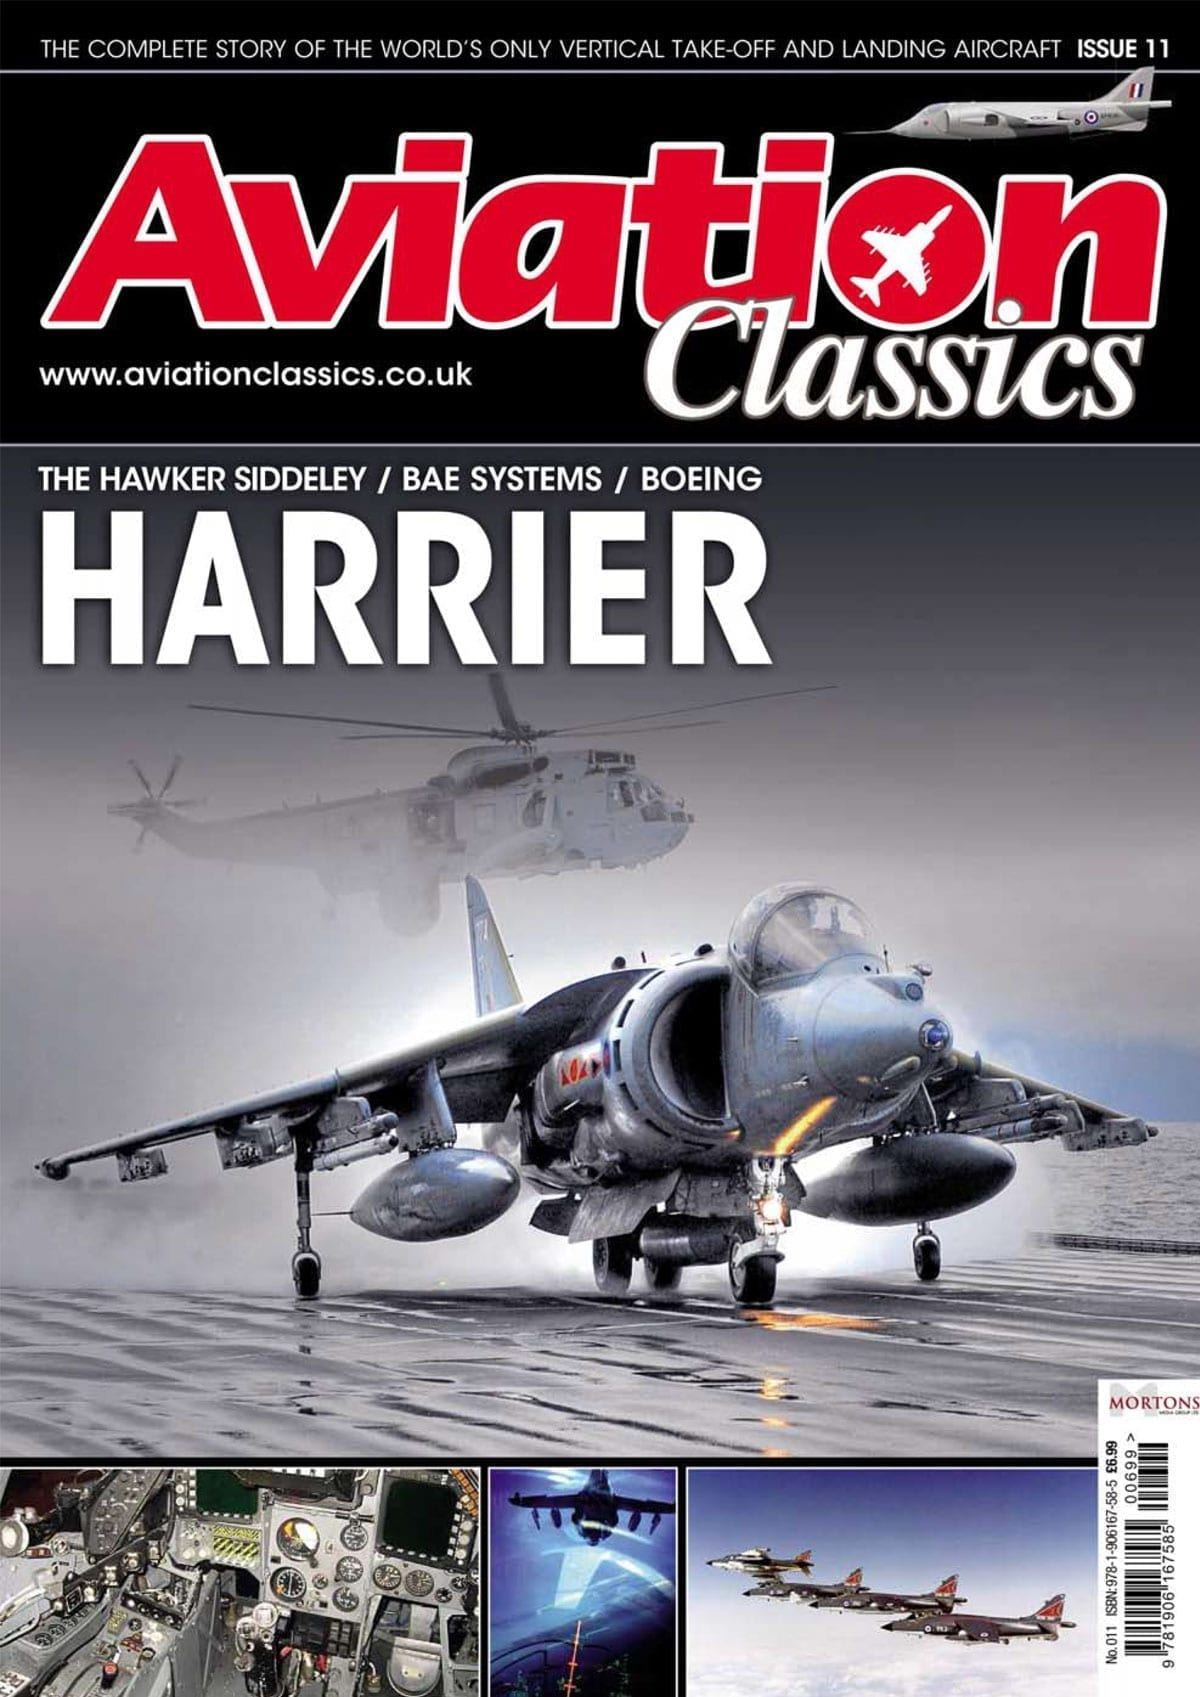 Aviation Classics – Harrier